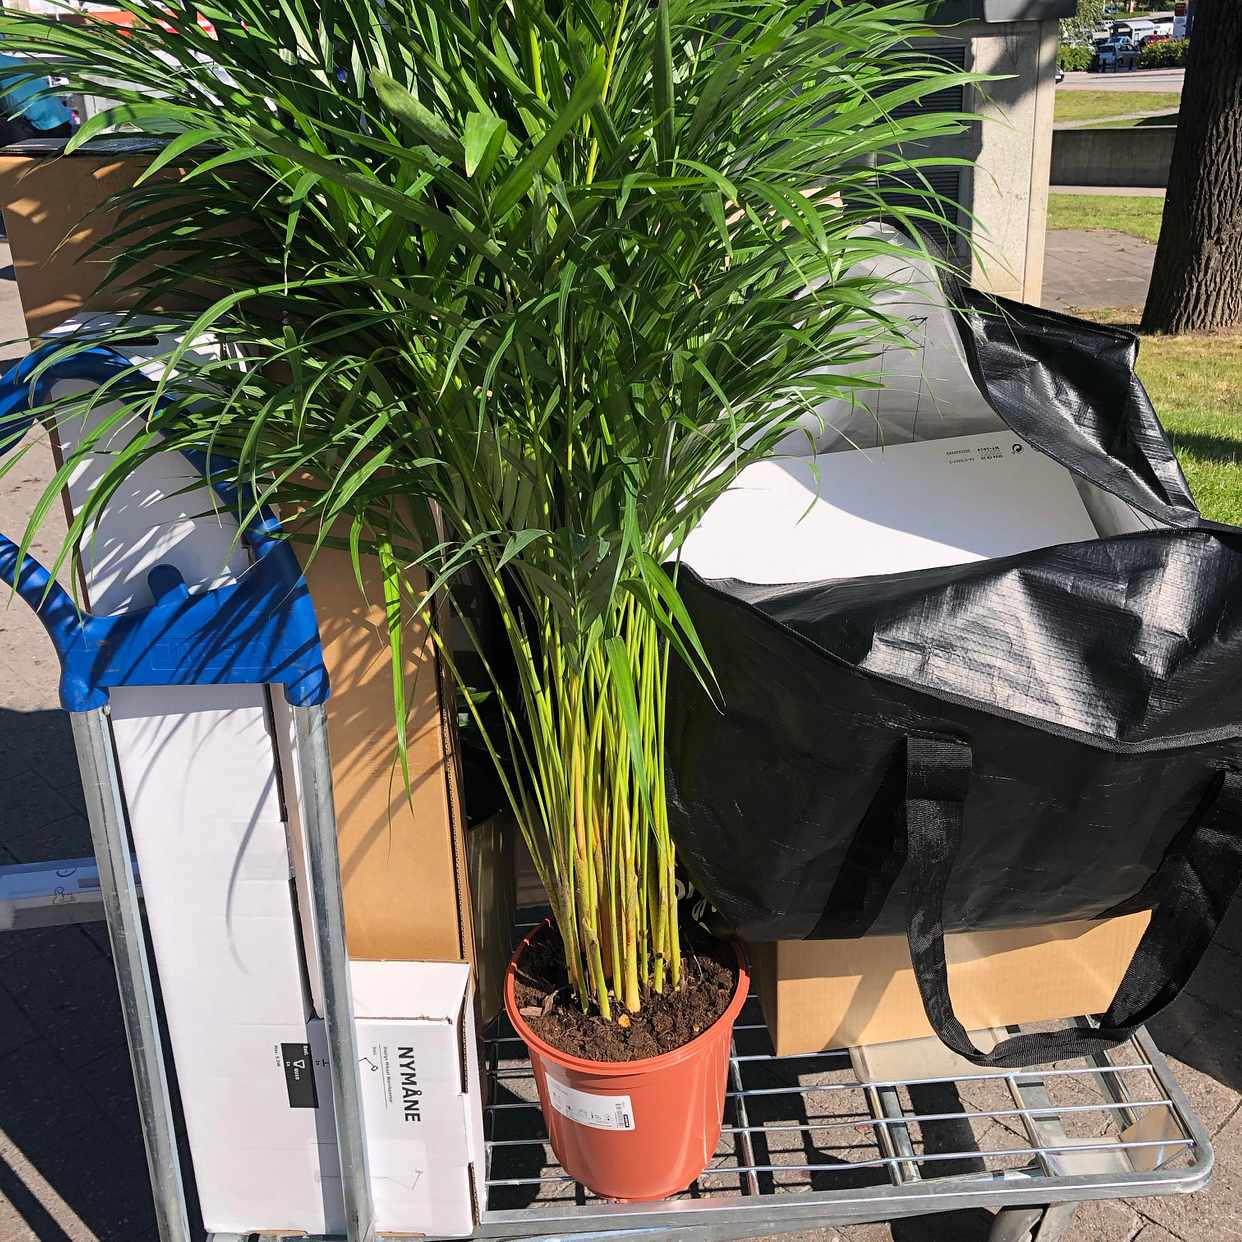 image of Ikea purchases -